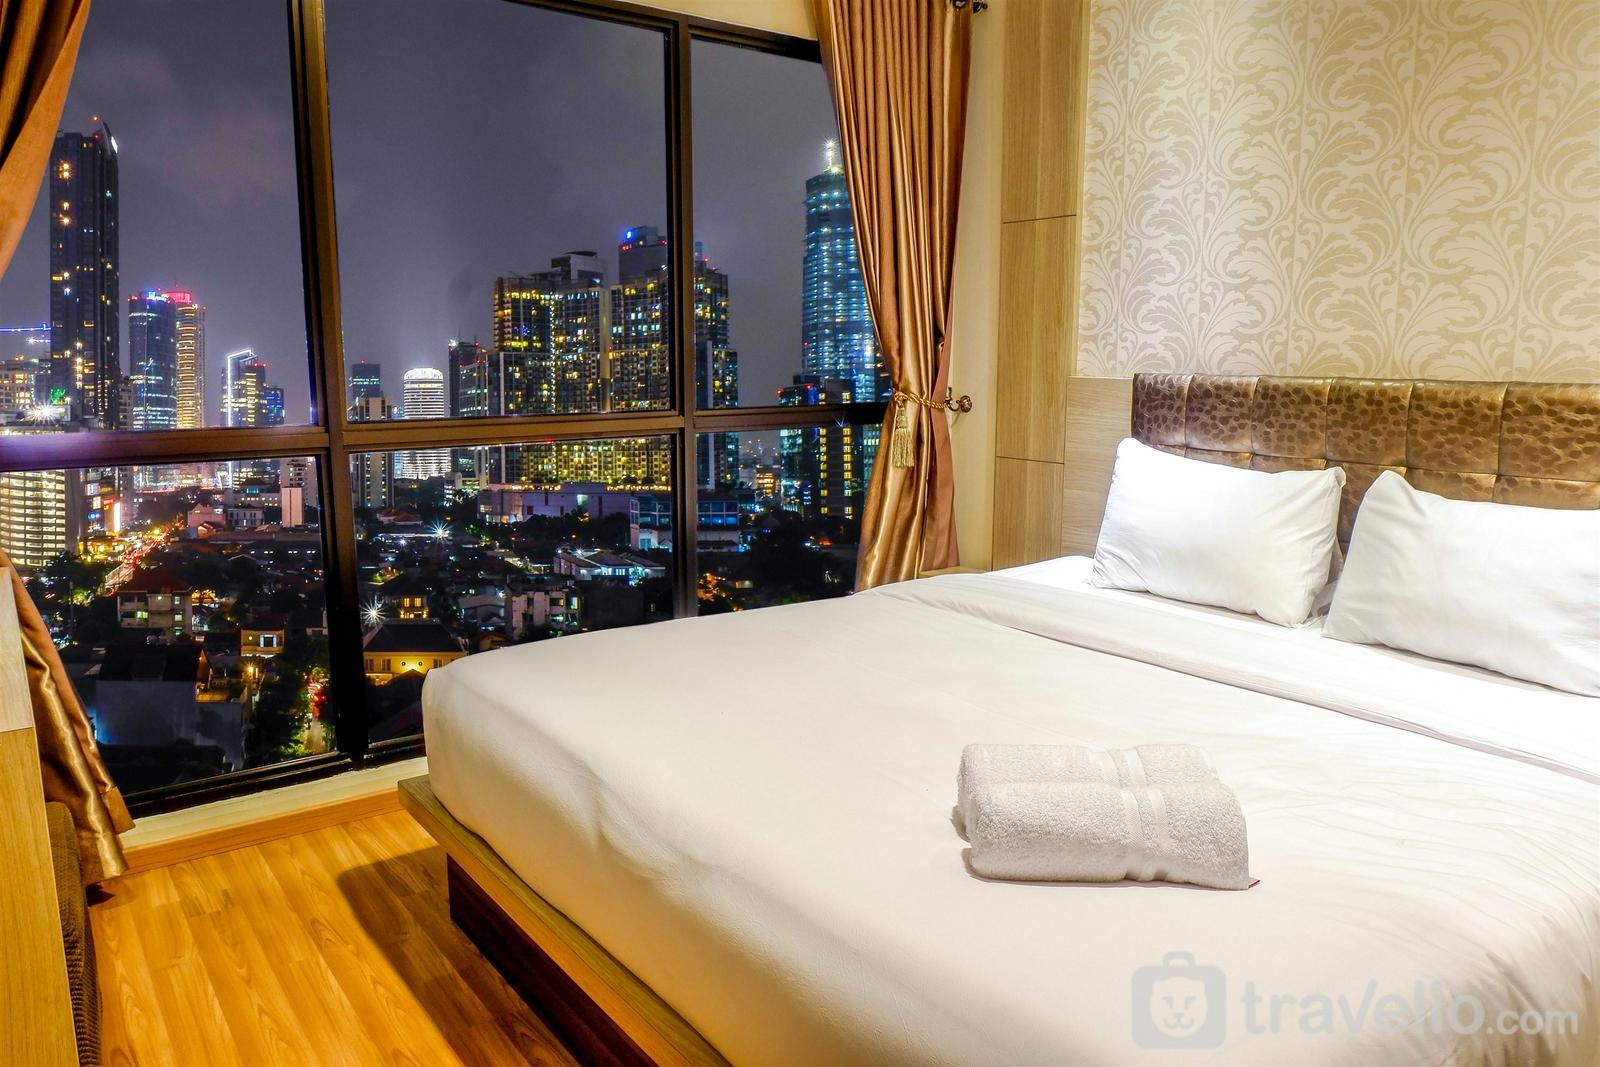 Tamansari Semanggi Apartment - 1BR Tamansari Semanggi Apartment near Lotte Shopping Mall By Travelio